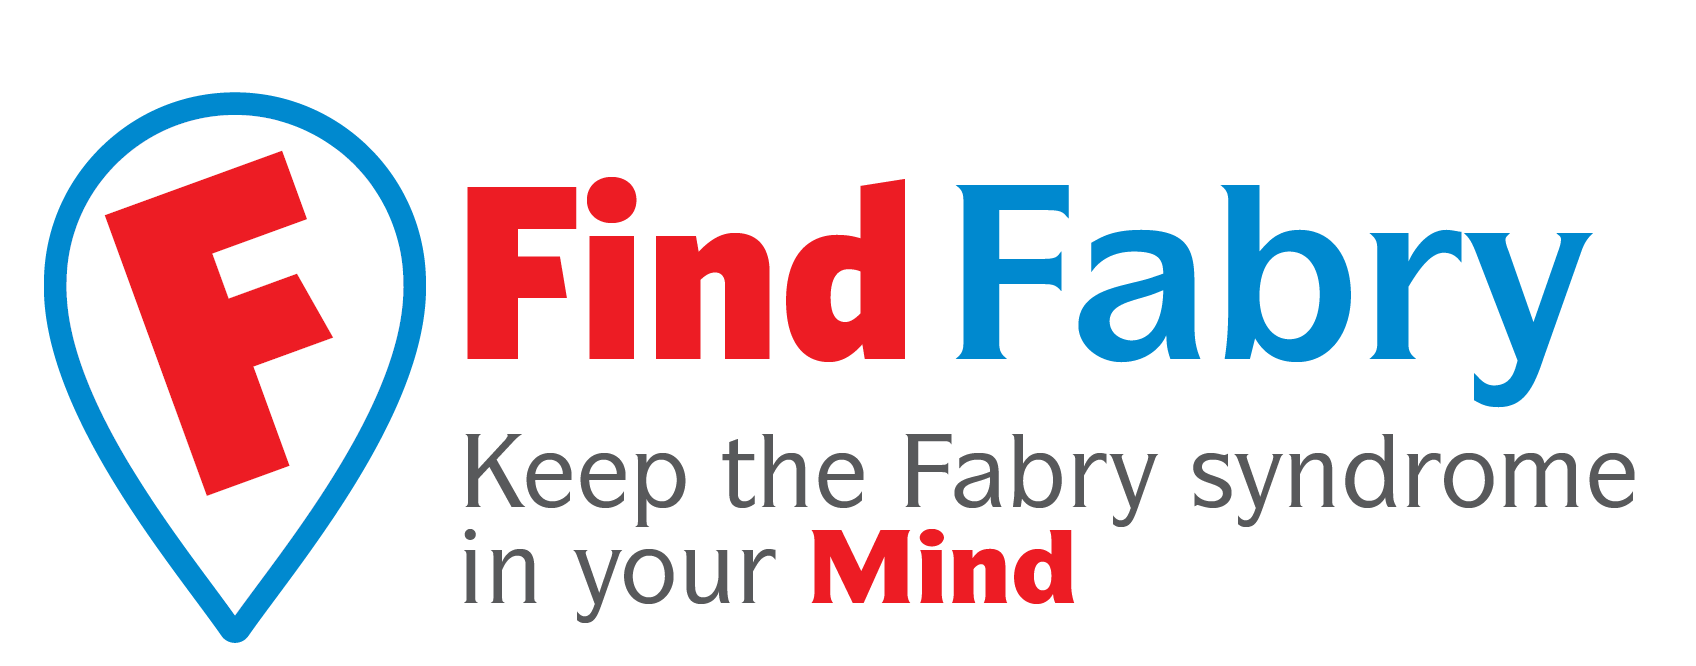 Find Fabry. Keep the Fabry syndrome in your mind